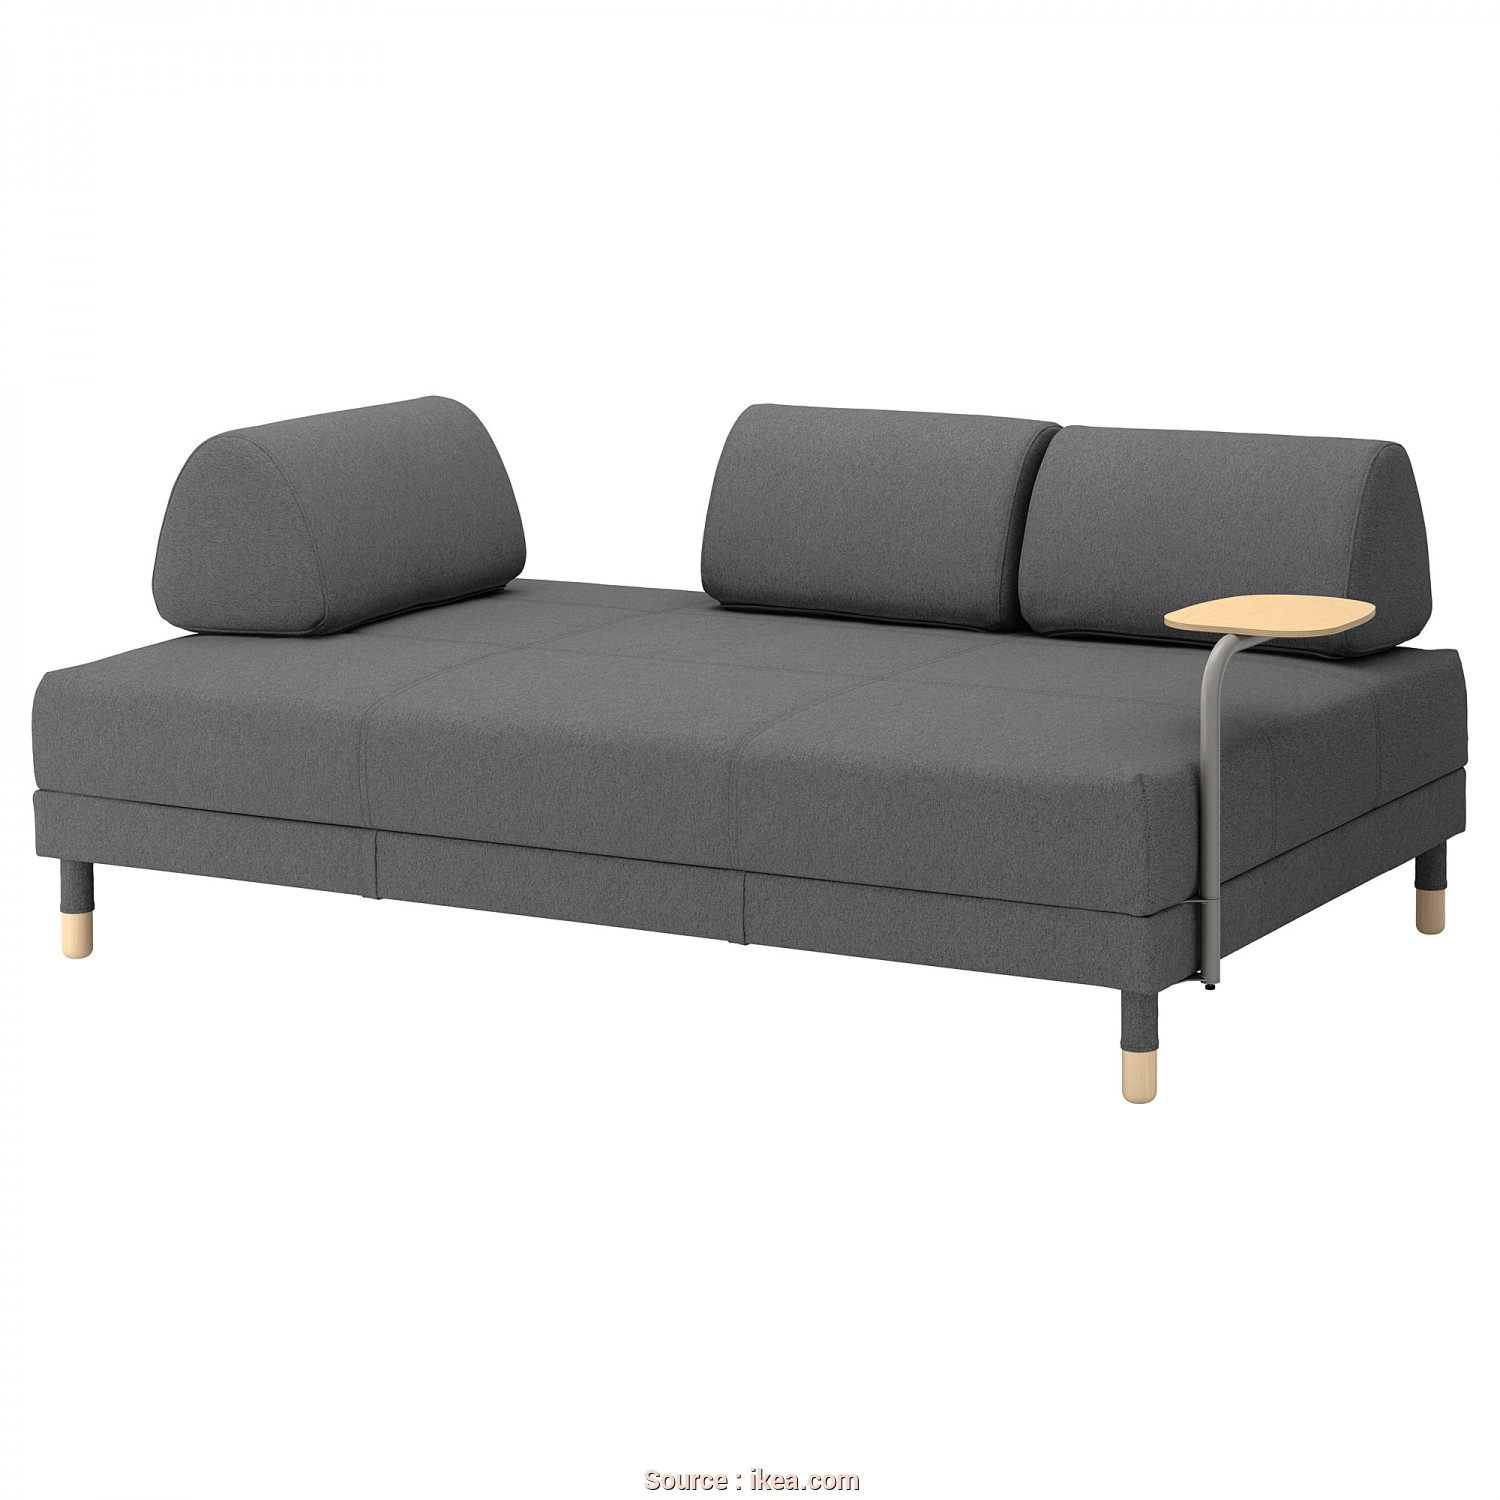 Futon Ikea Montreal, Semplice Inter IKEA Systems B.V. 1999, 2019, Privacy Policy, Cookie Policy, Accessibility